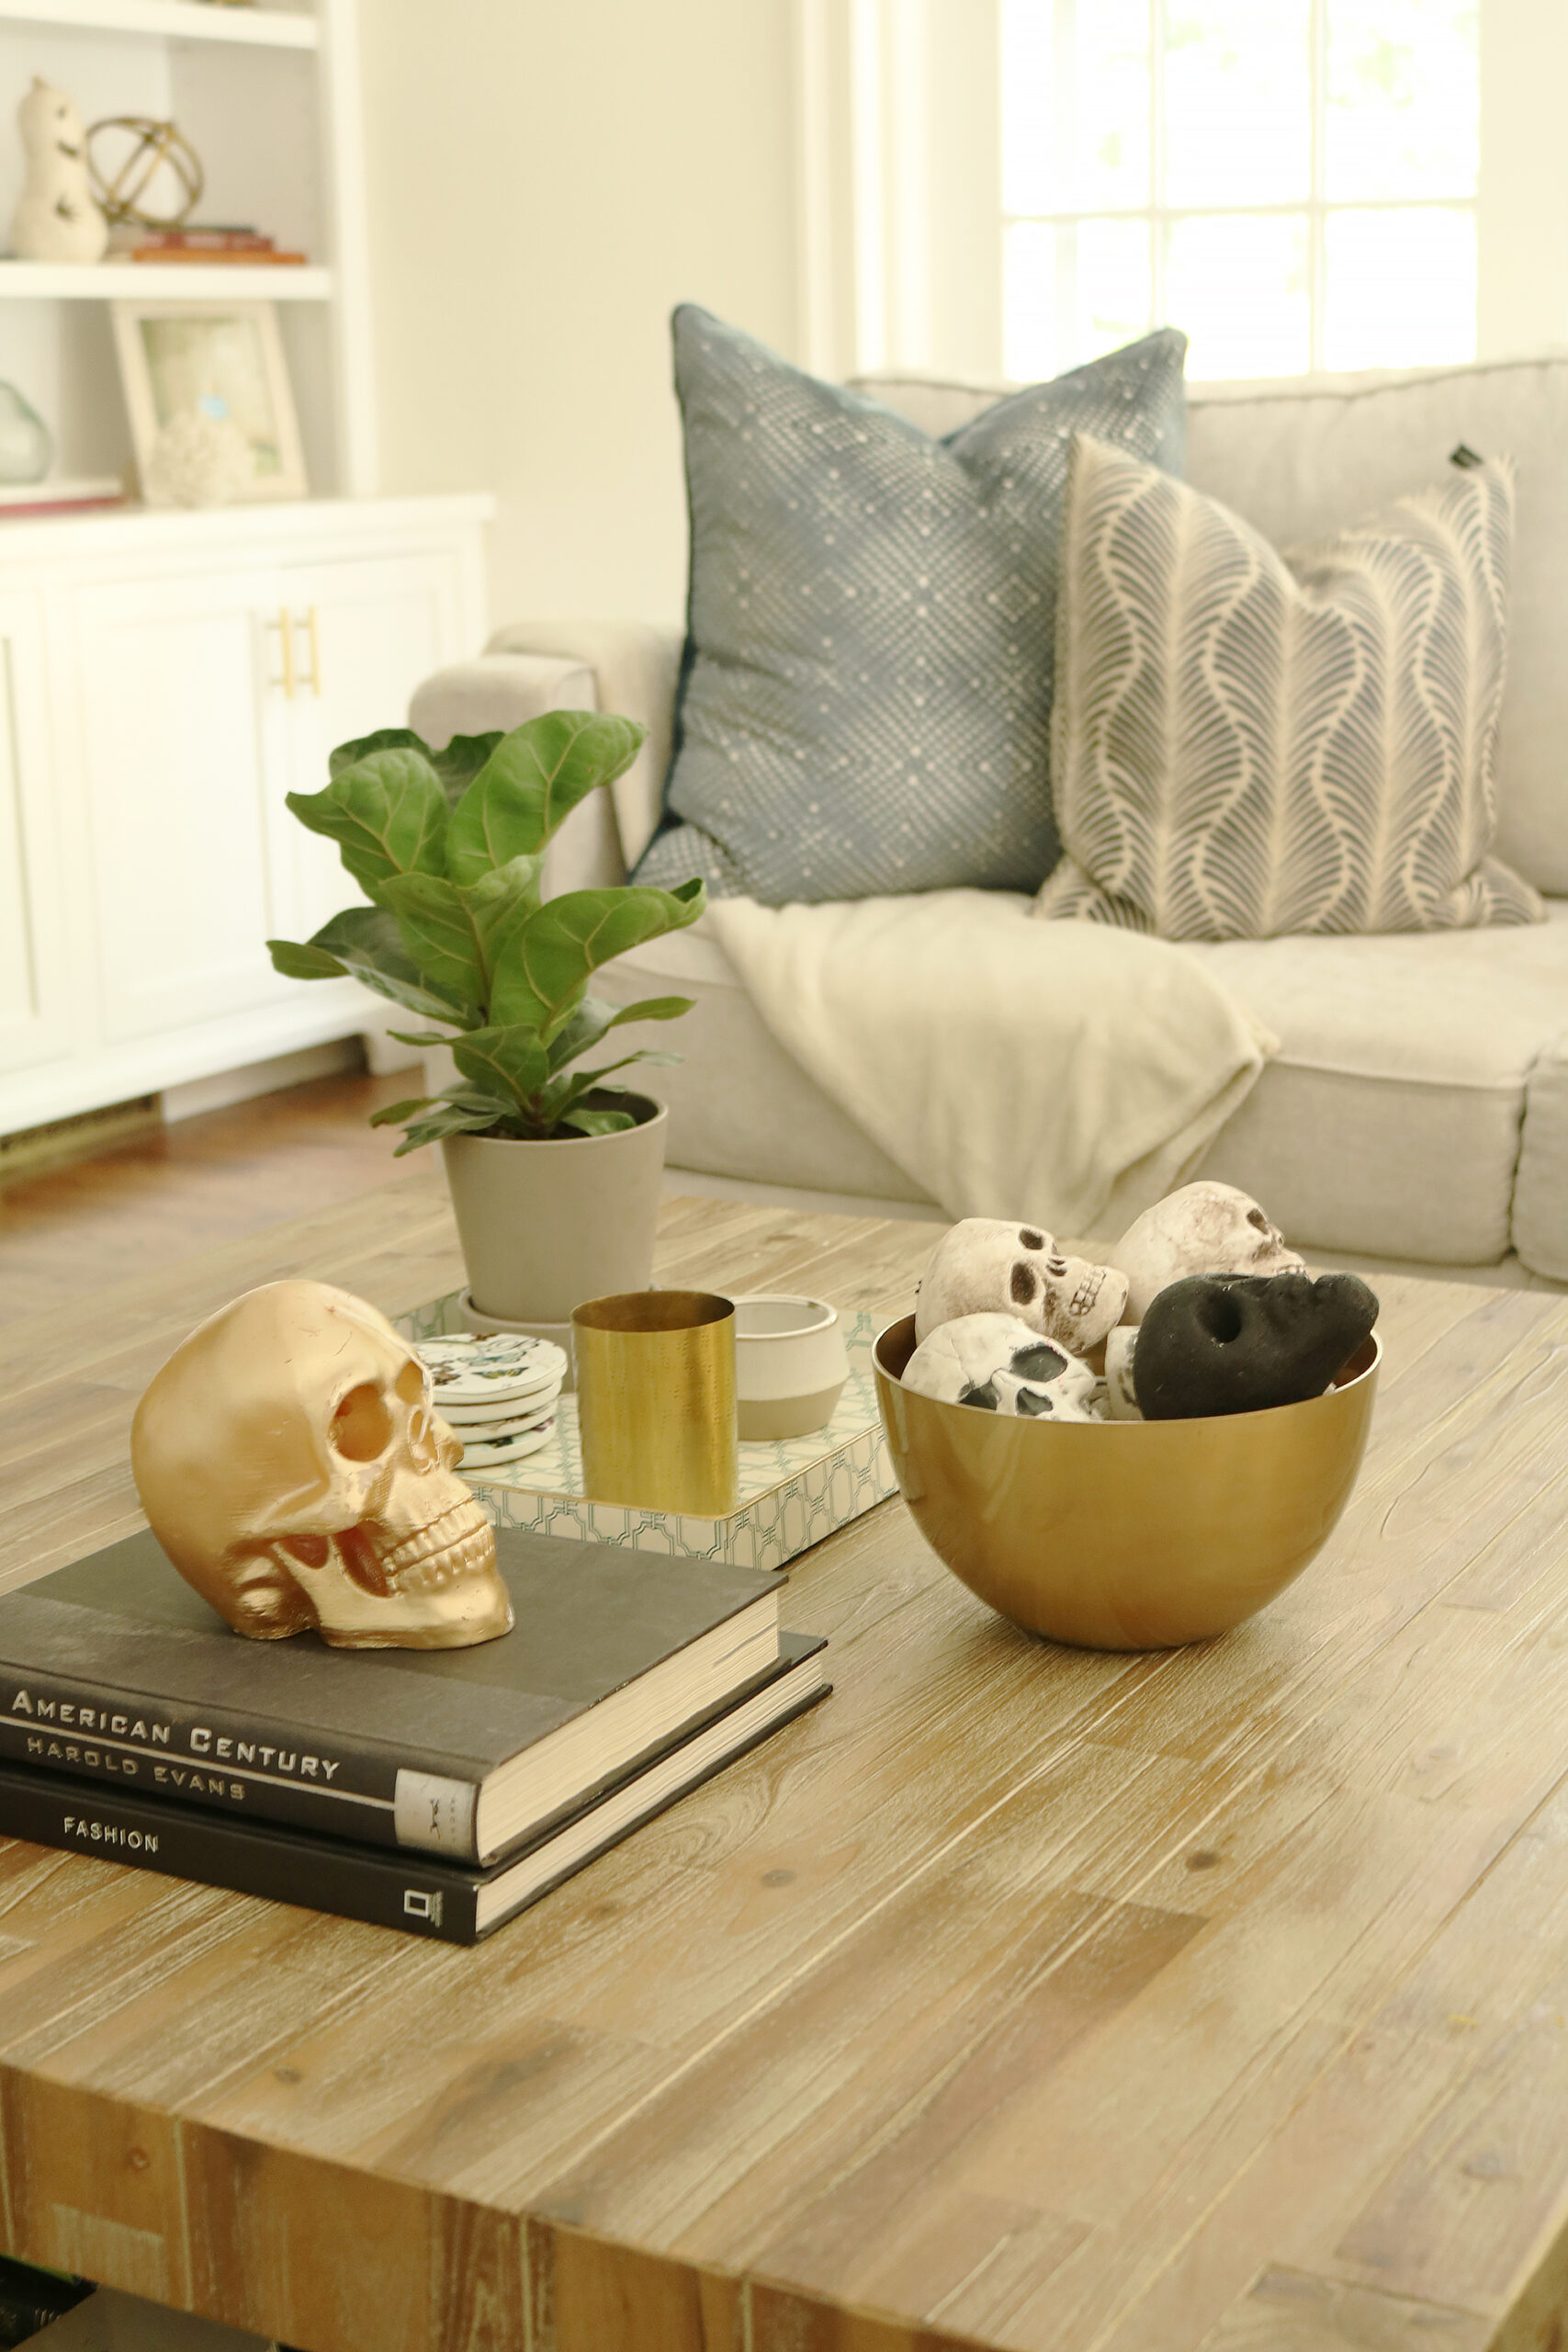 Our not-so-spooky Halloween Decorations with spiders and skeletons on coffee table-simple and easy spooky fun || Darling Darleen Top CT Lifestyle Blogger #darlingdarleen #halloweendecorations